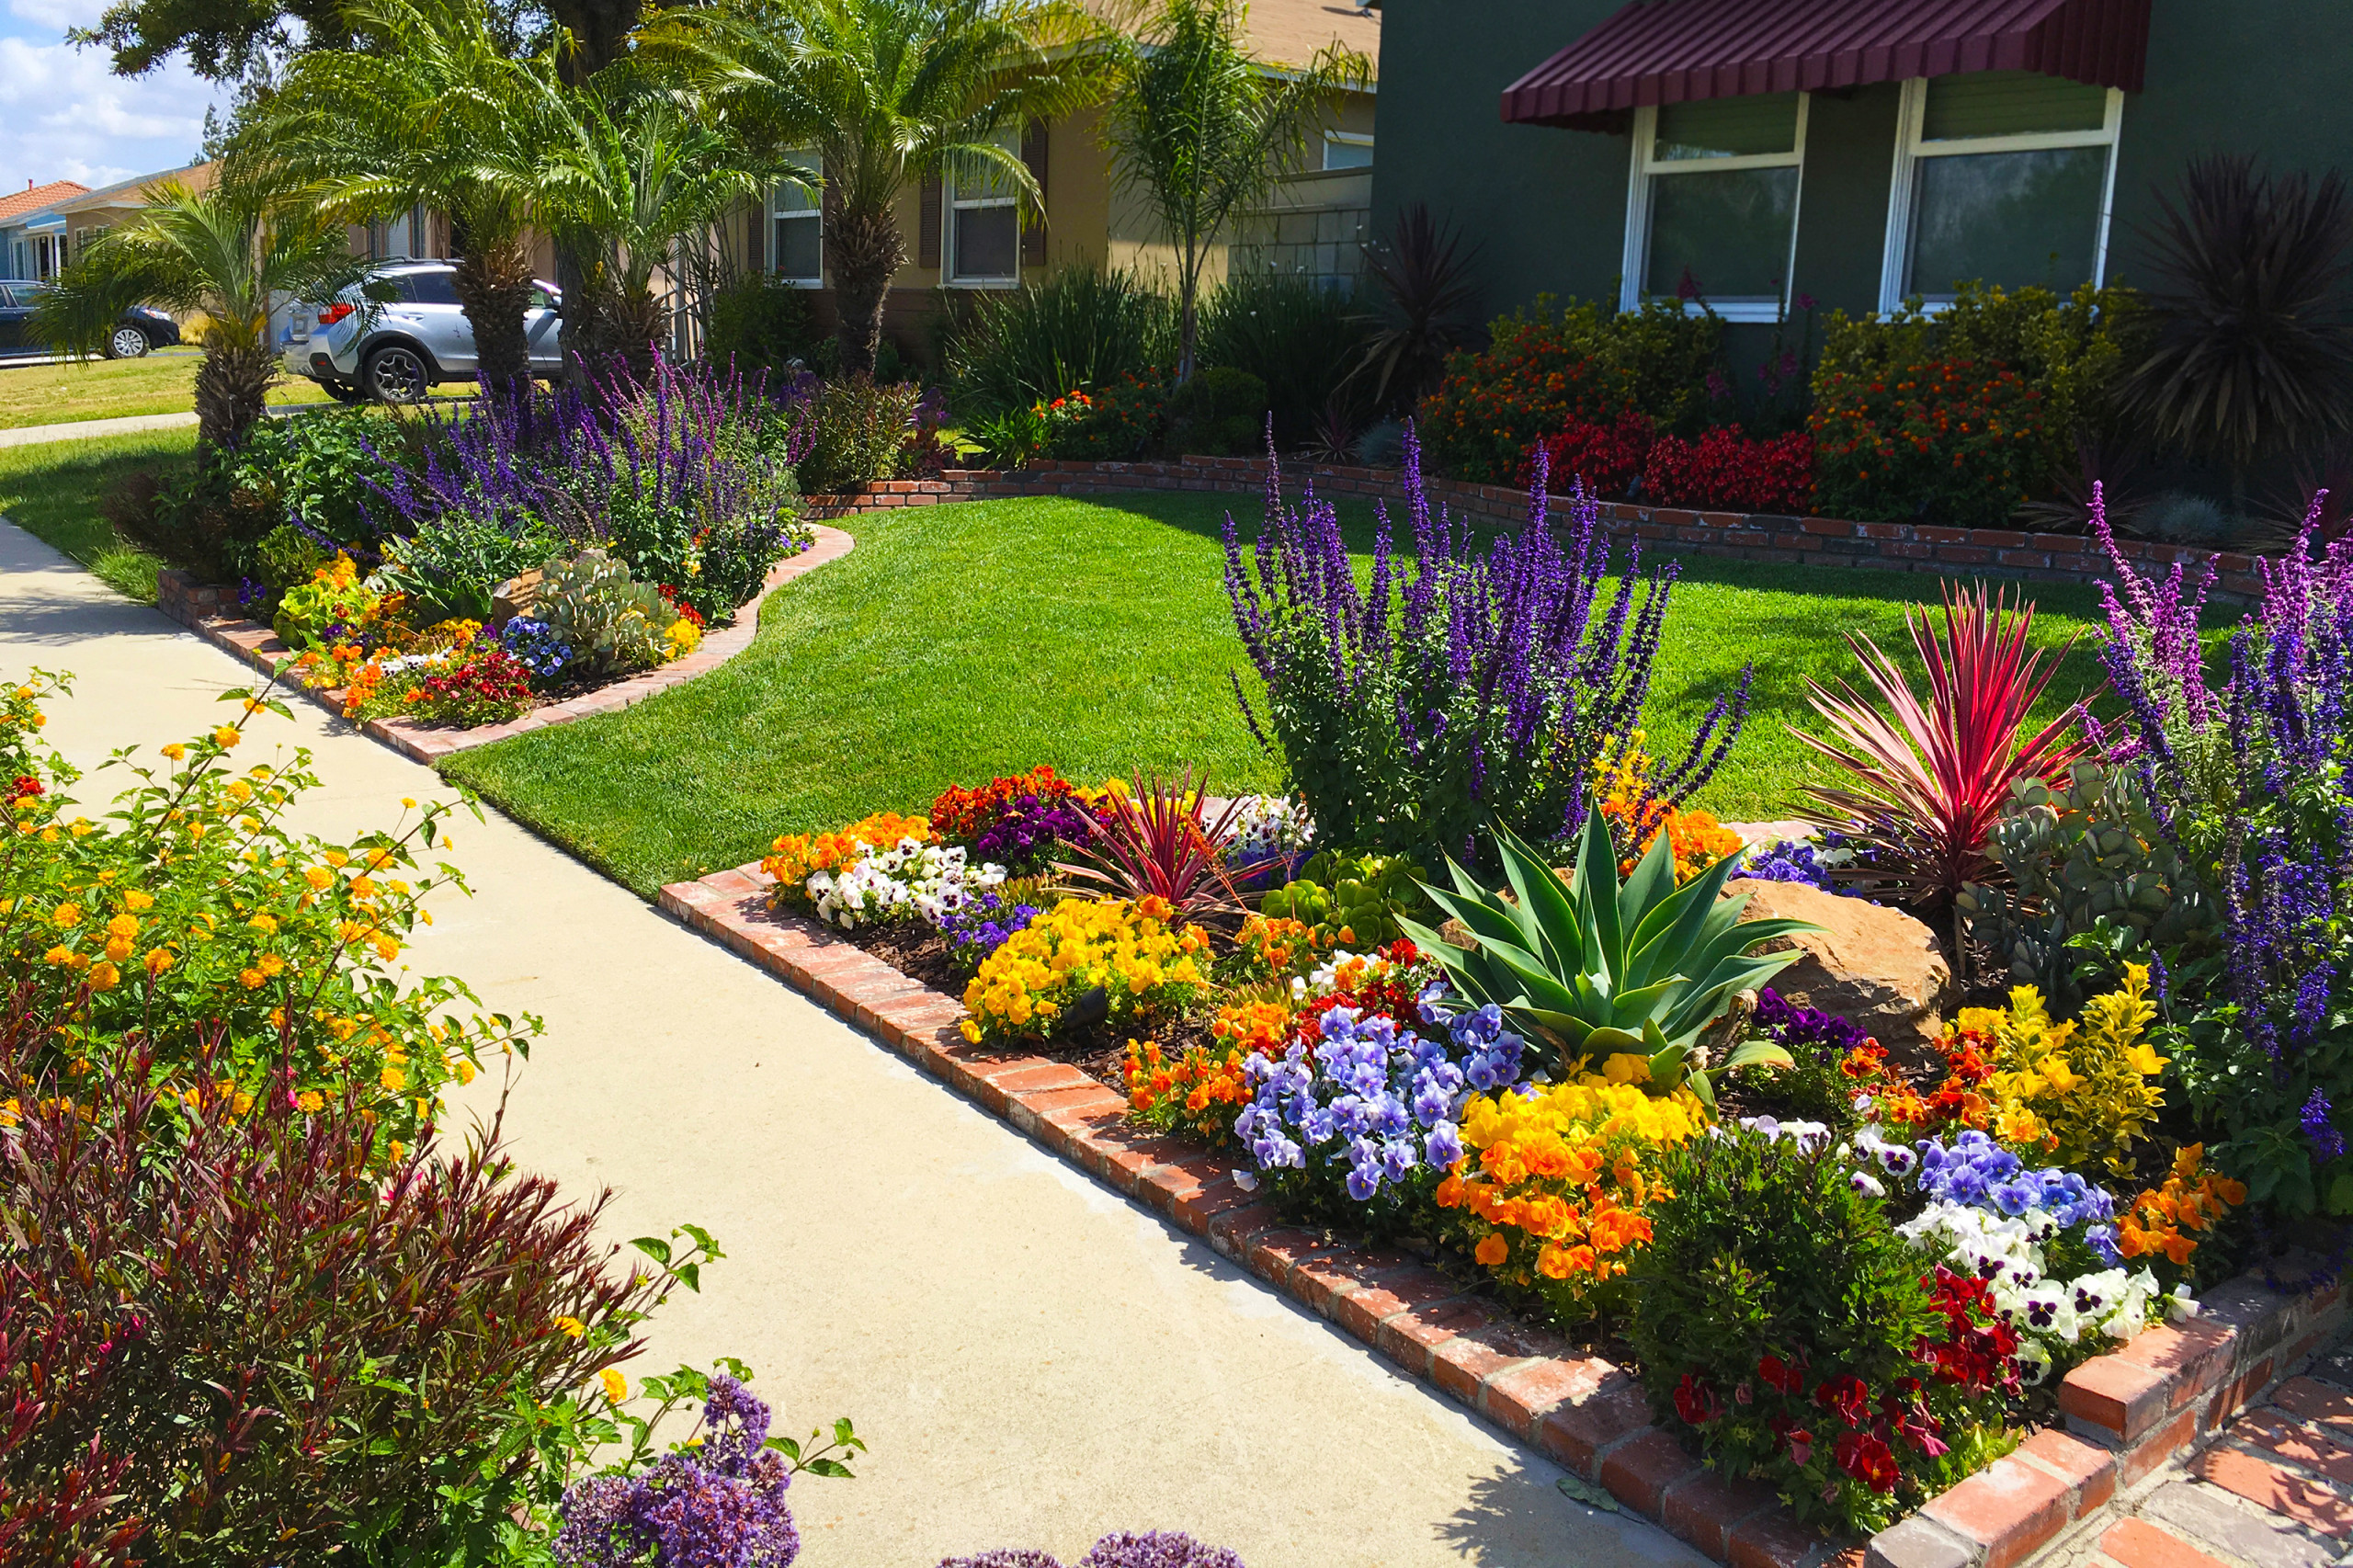 Landscape Design For Front Yards  Front Yard Landscaping Ideas for Curb Appeal